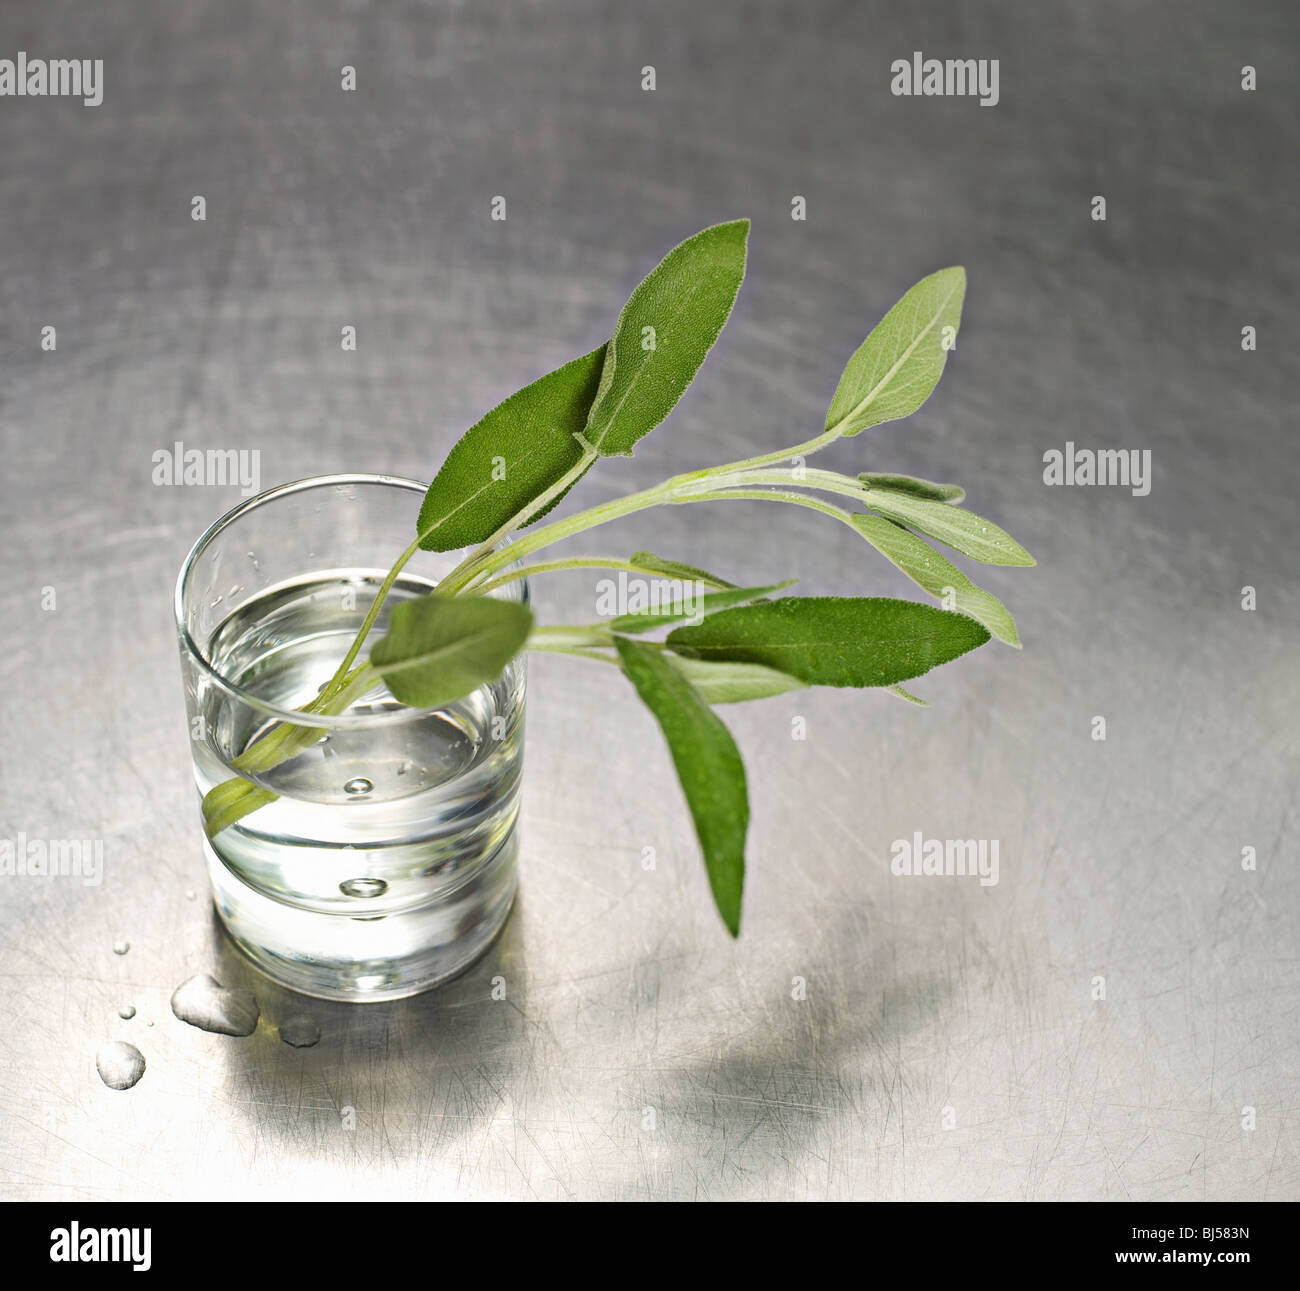 A water glass with a sprig of sage in it - Stock Image